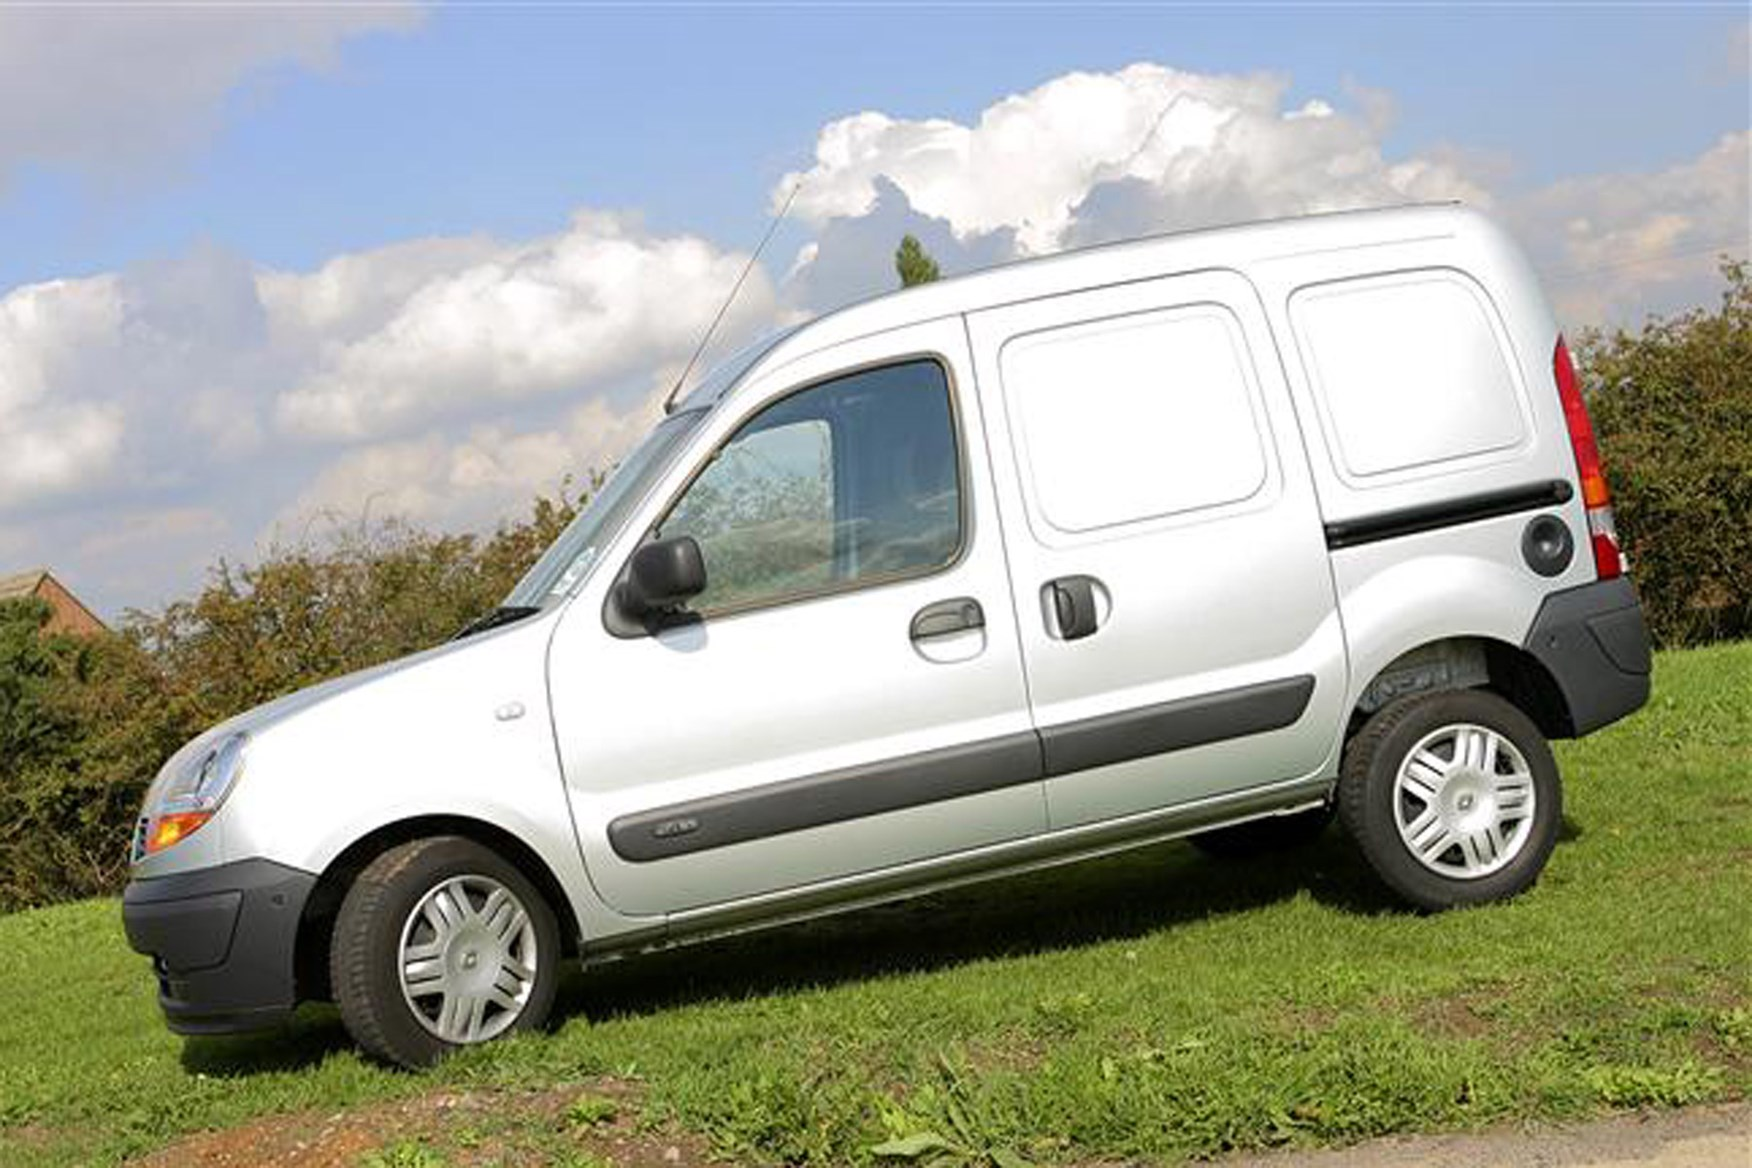 Renault Kangoo review on Parkers Vans - side exterior